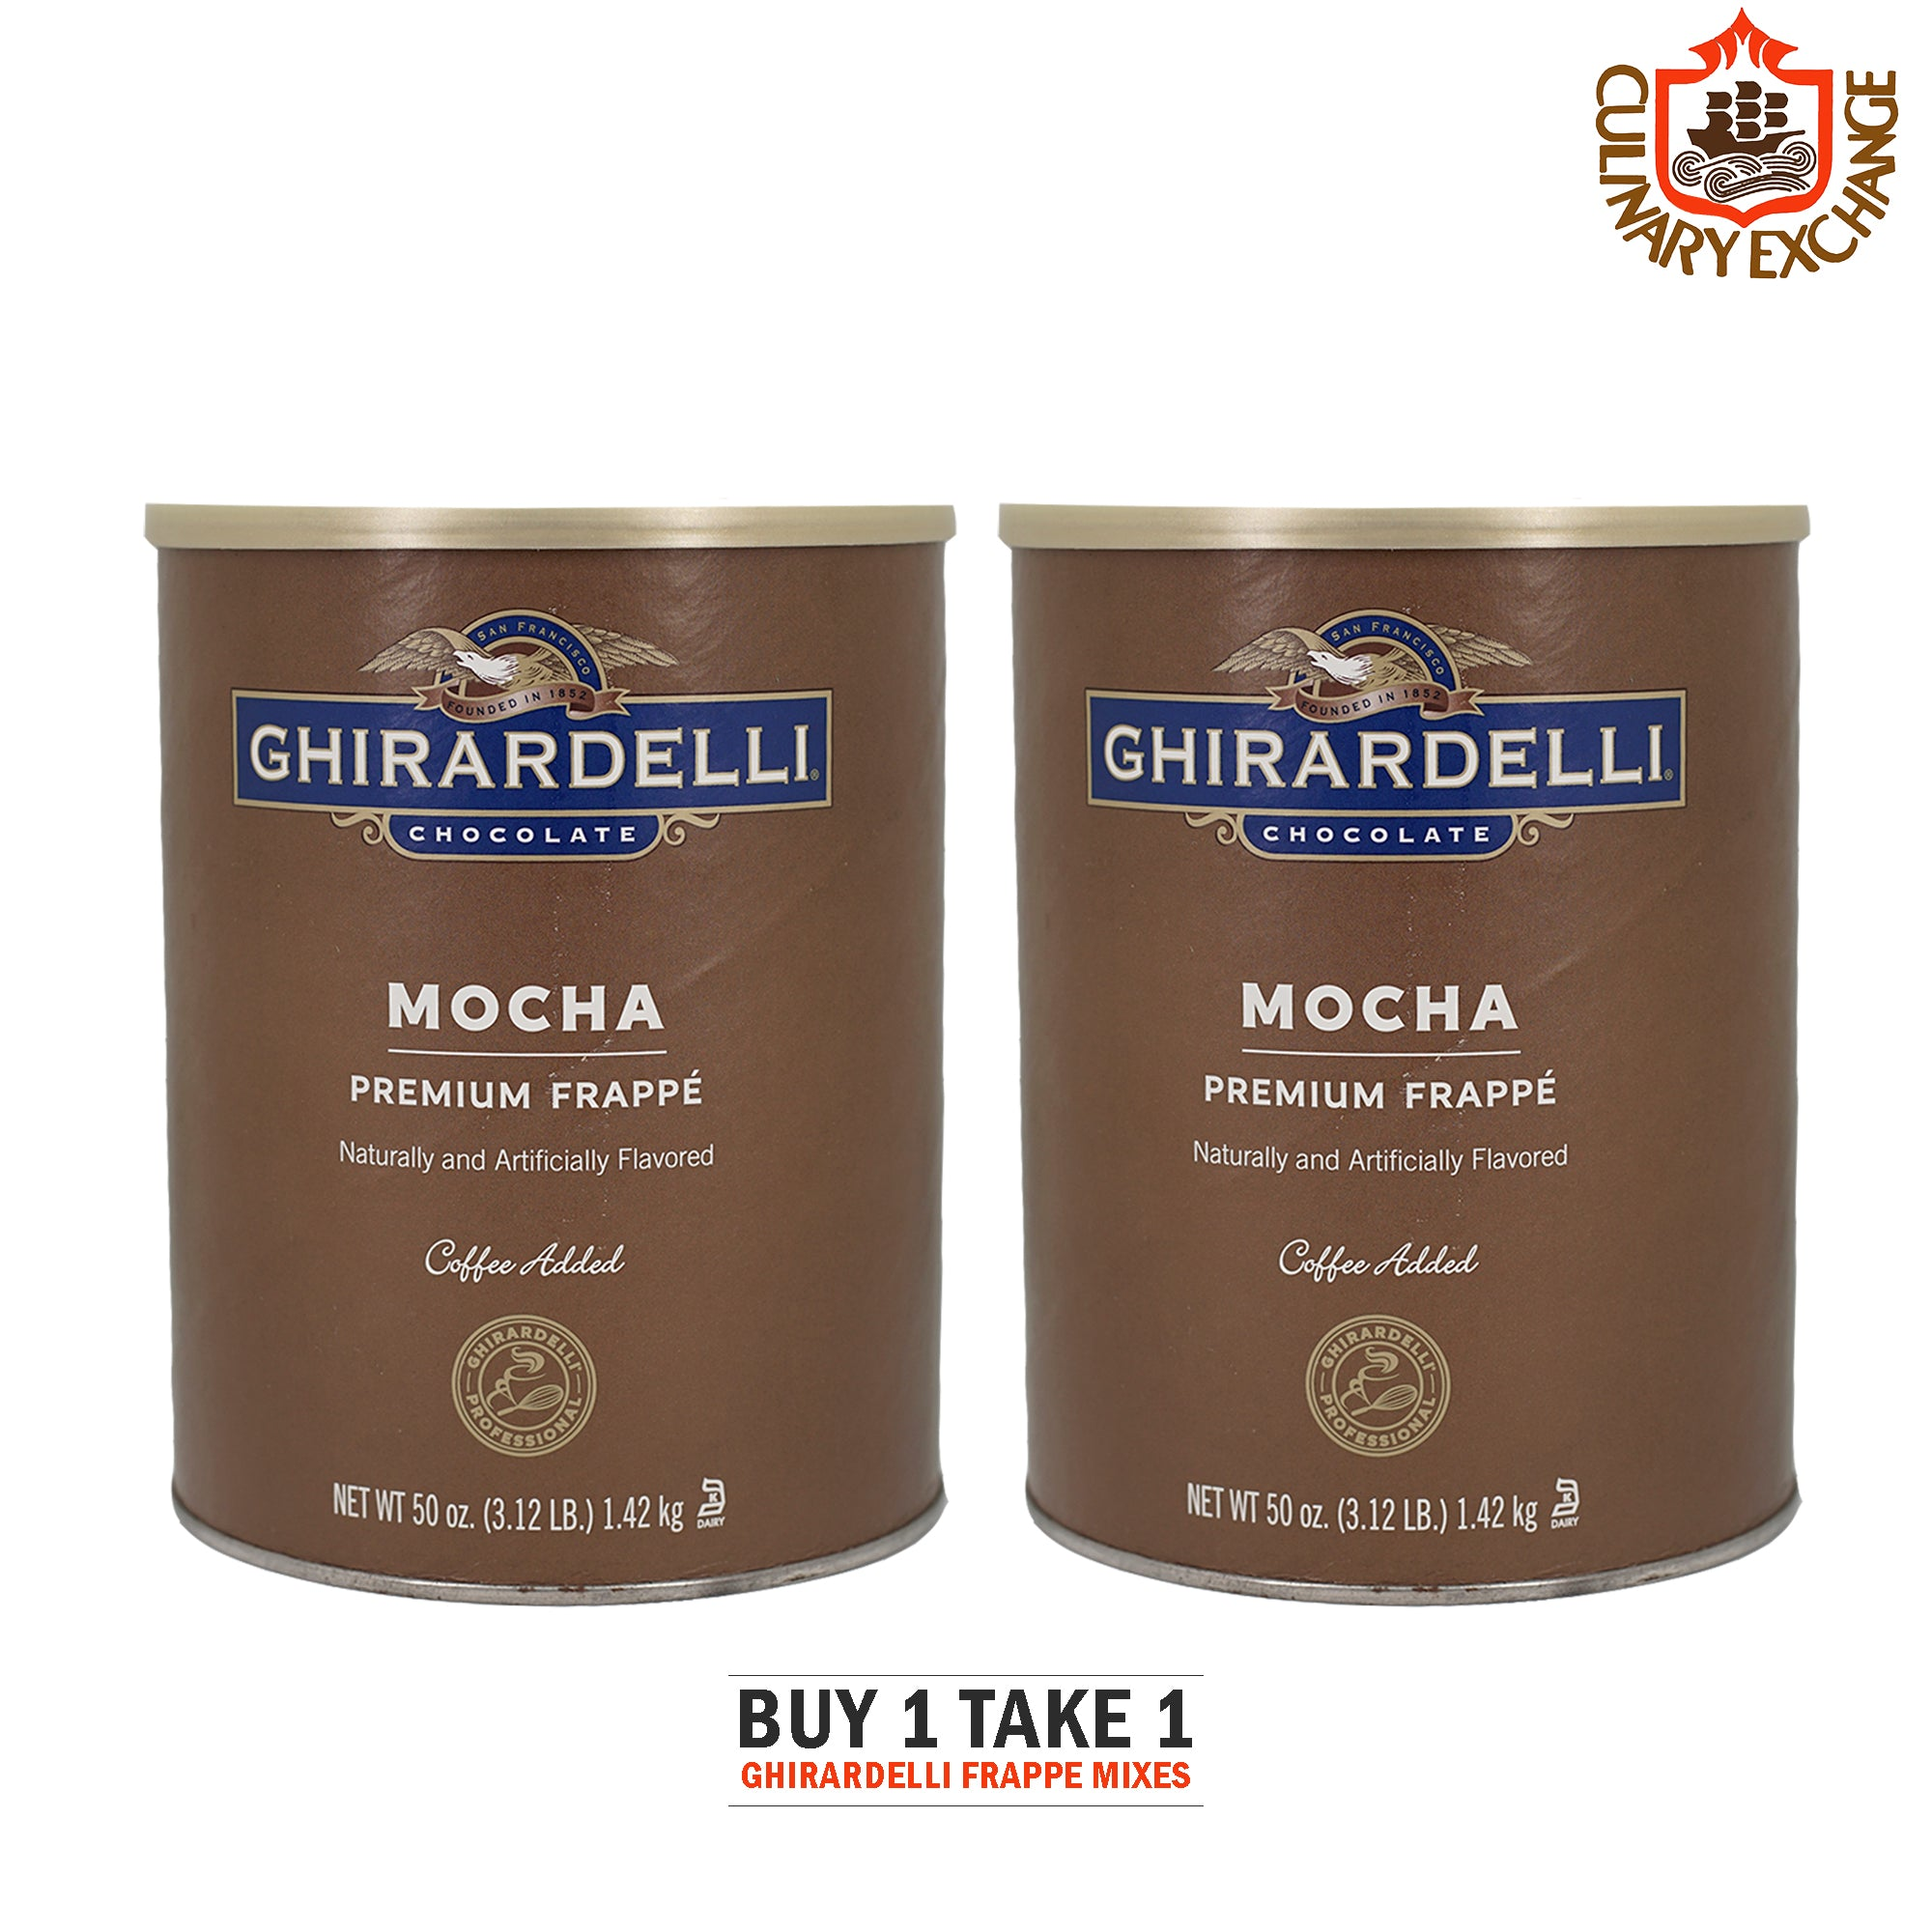 Buy 1 Take 1 Ghirardelli Frappe Mix